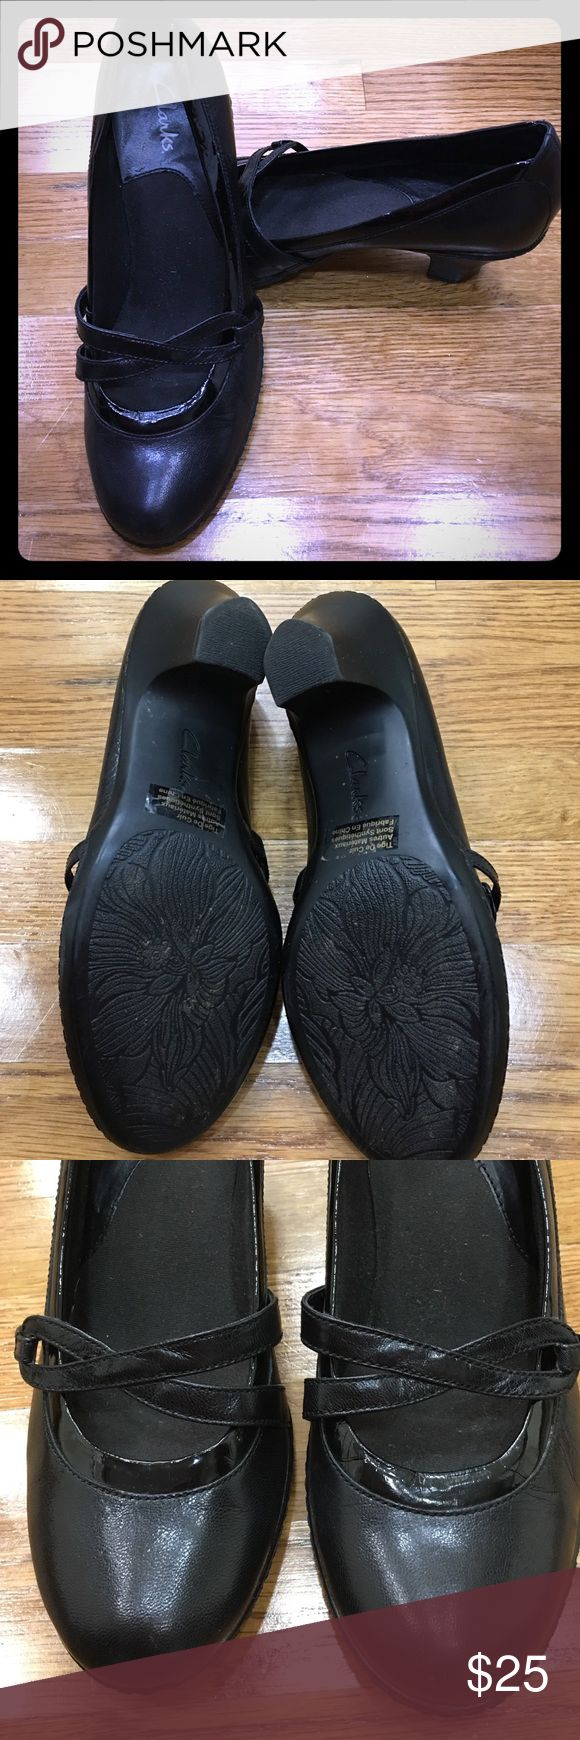 """Clark's ladies shoes Clark's ladies shoes leather in prelove condition with no problem. Size 7M with 2"""" heels Clarks Shoes Heels"""